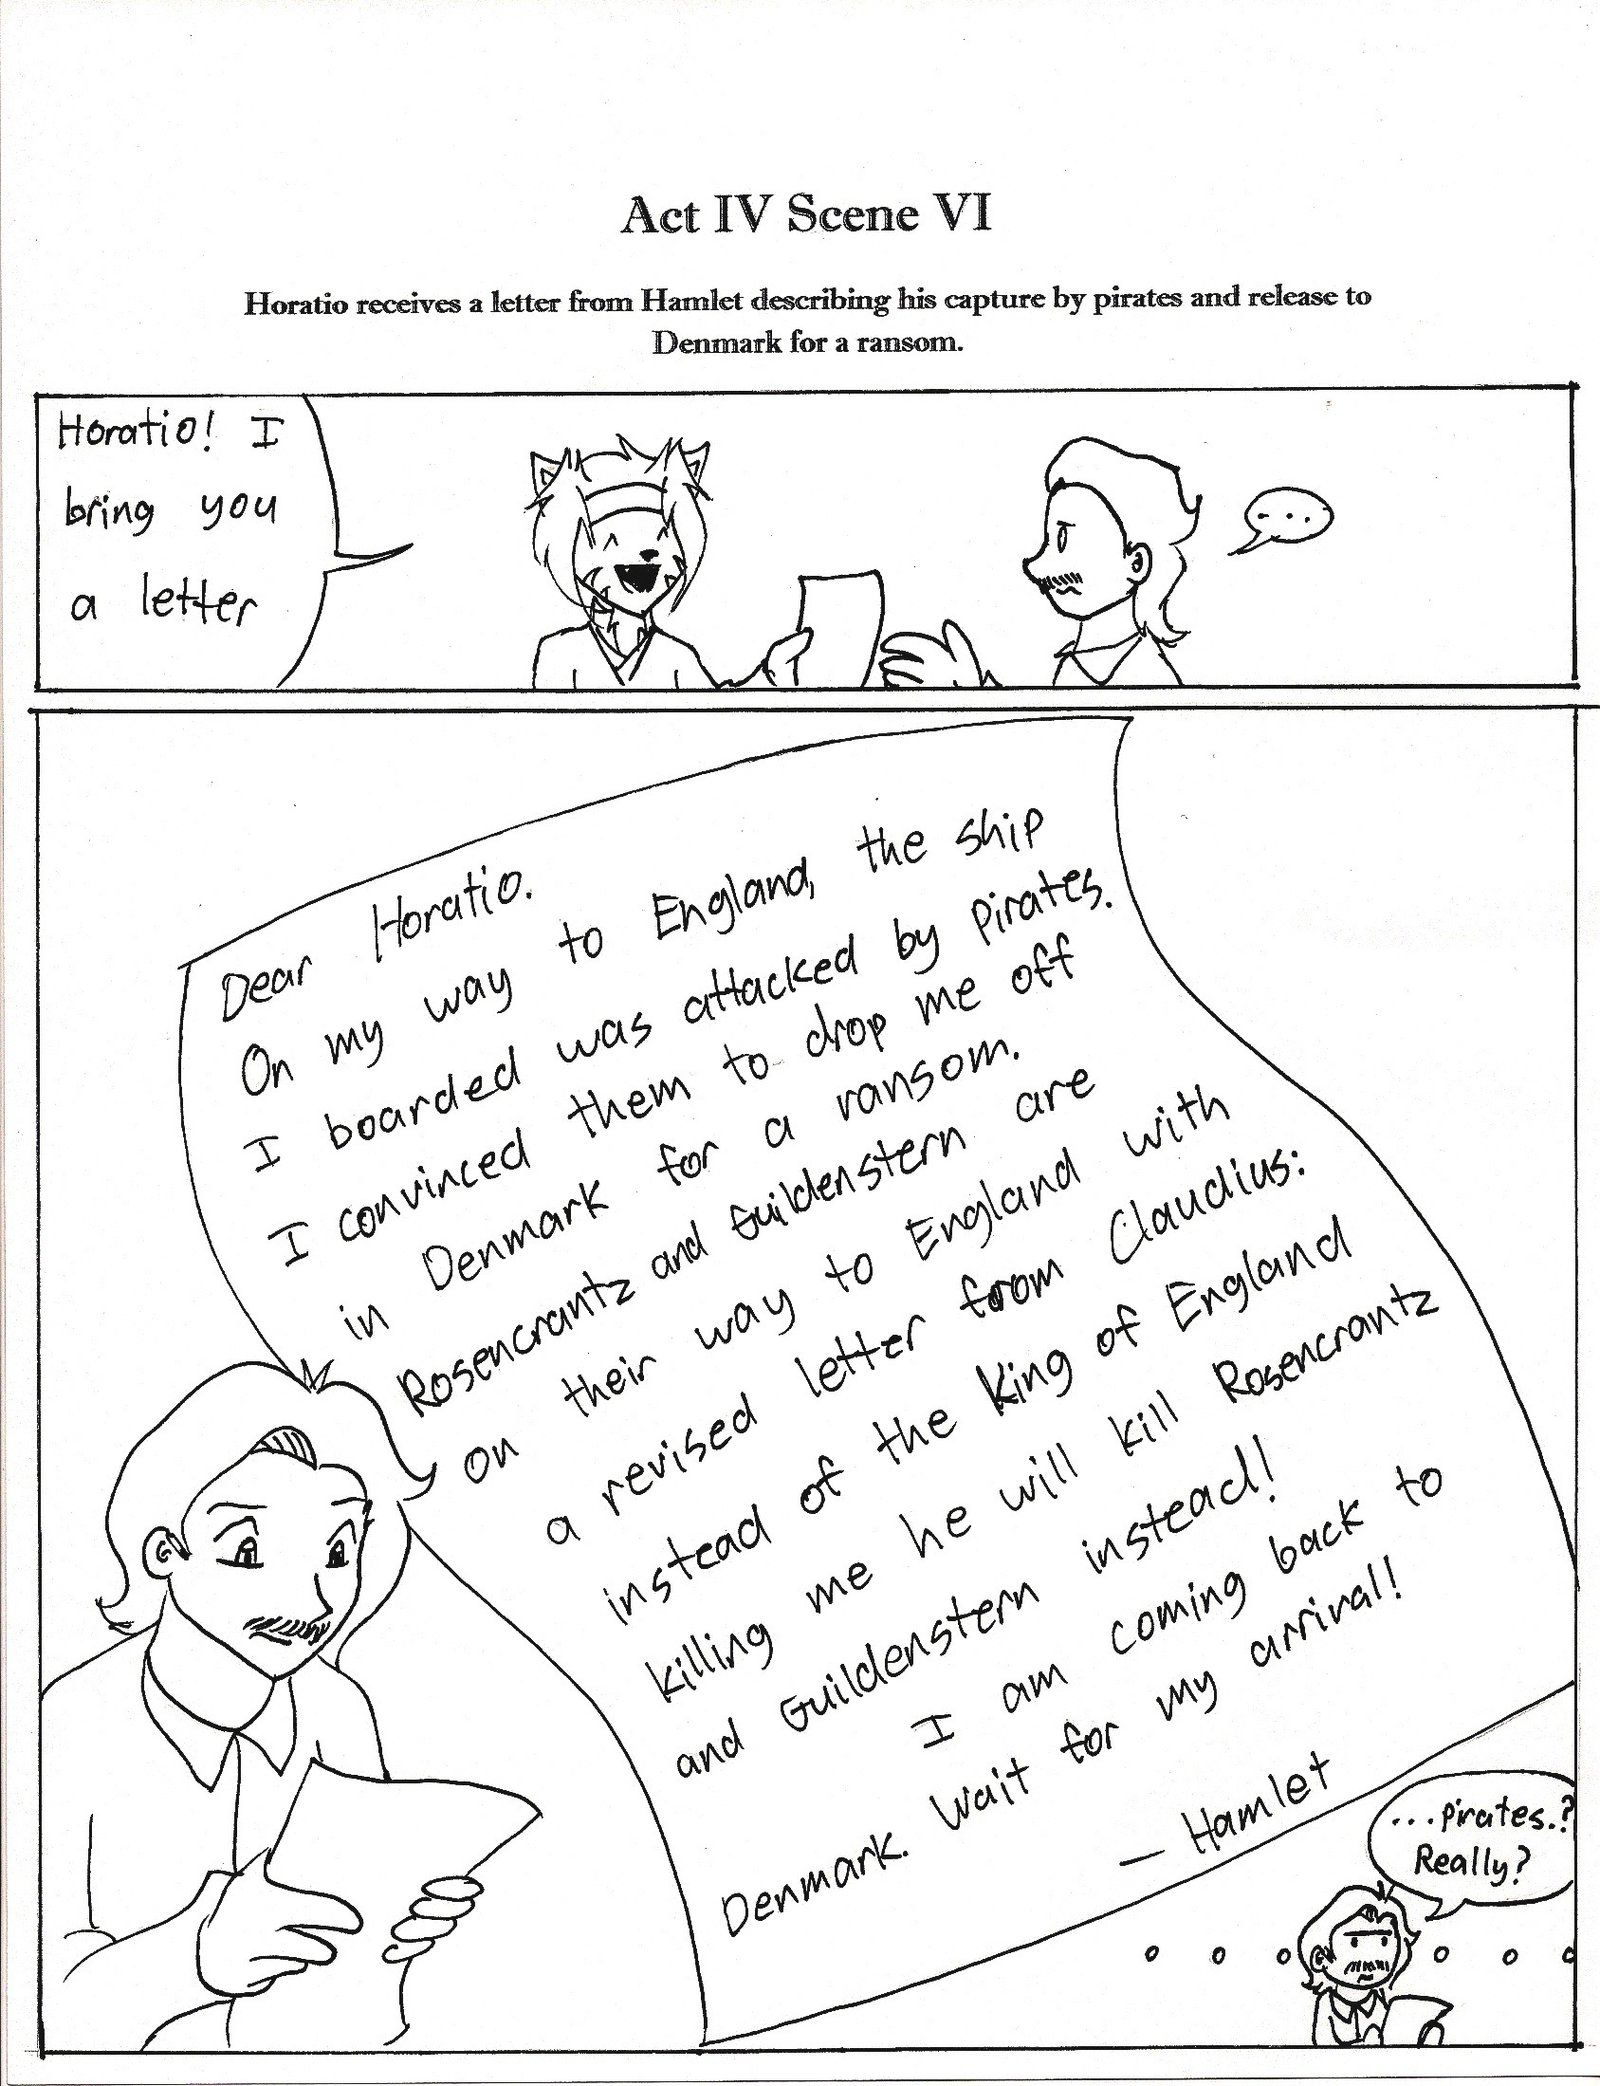 Act 4 Scene 6 Horatio is given a letter written by Hamlet